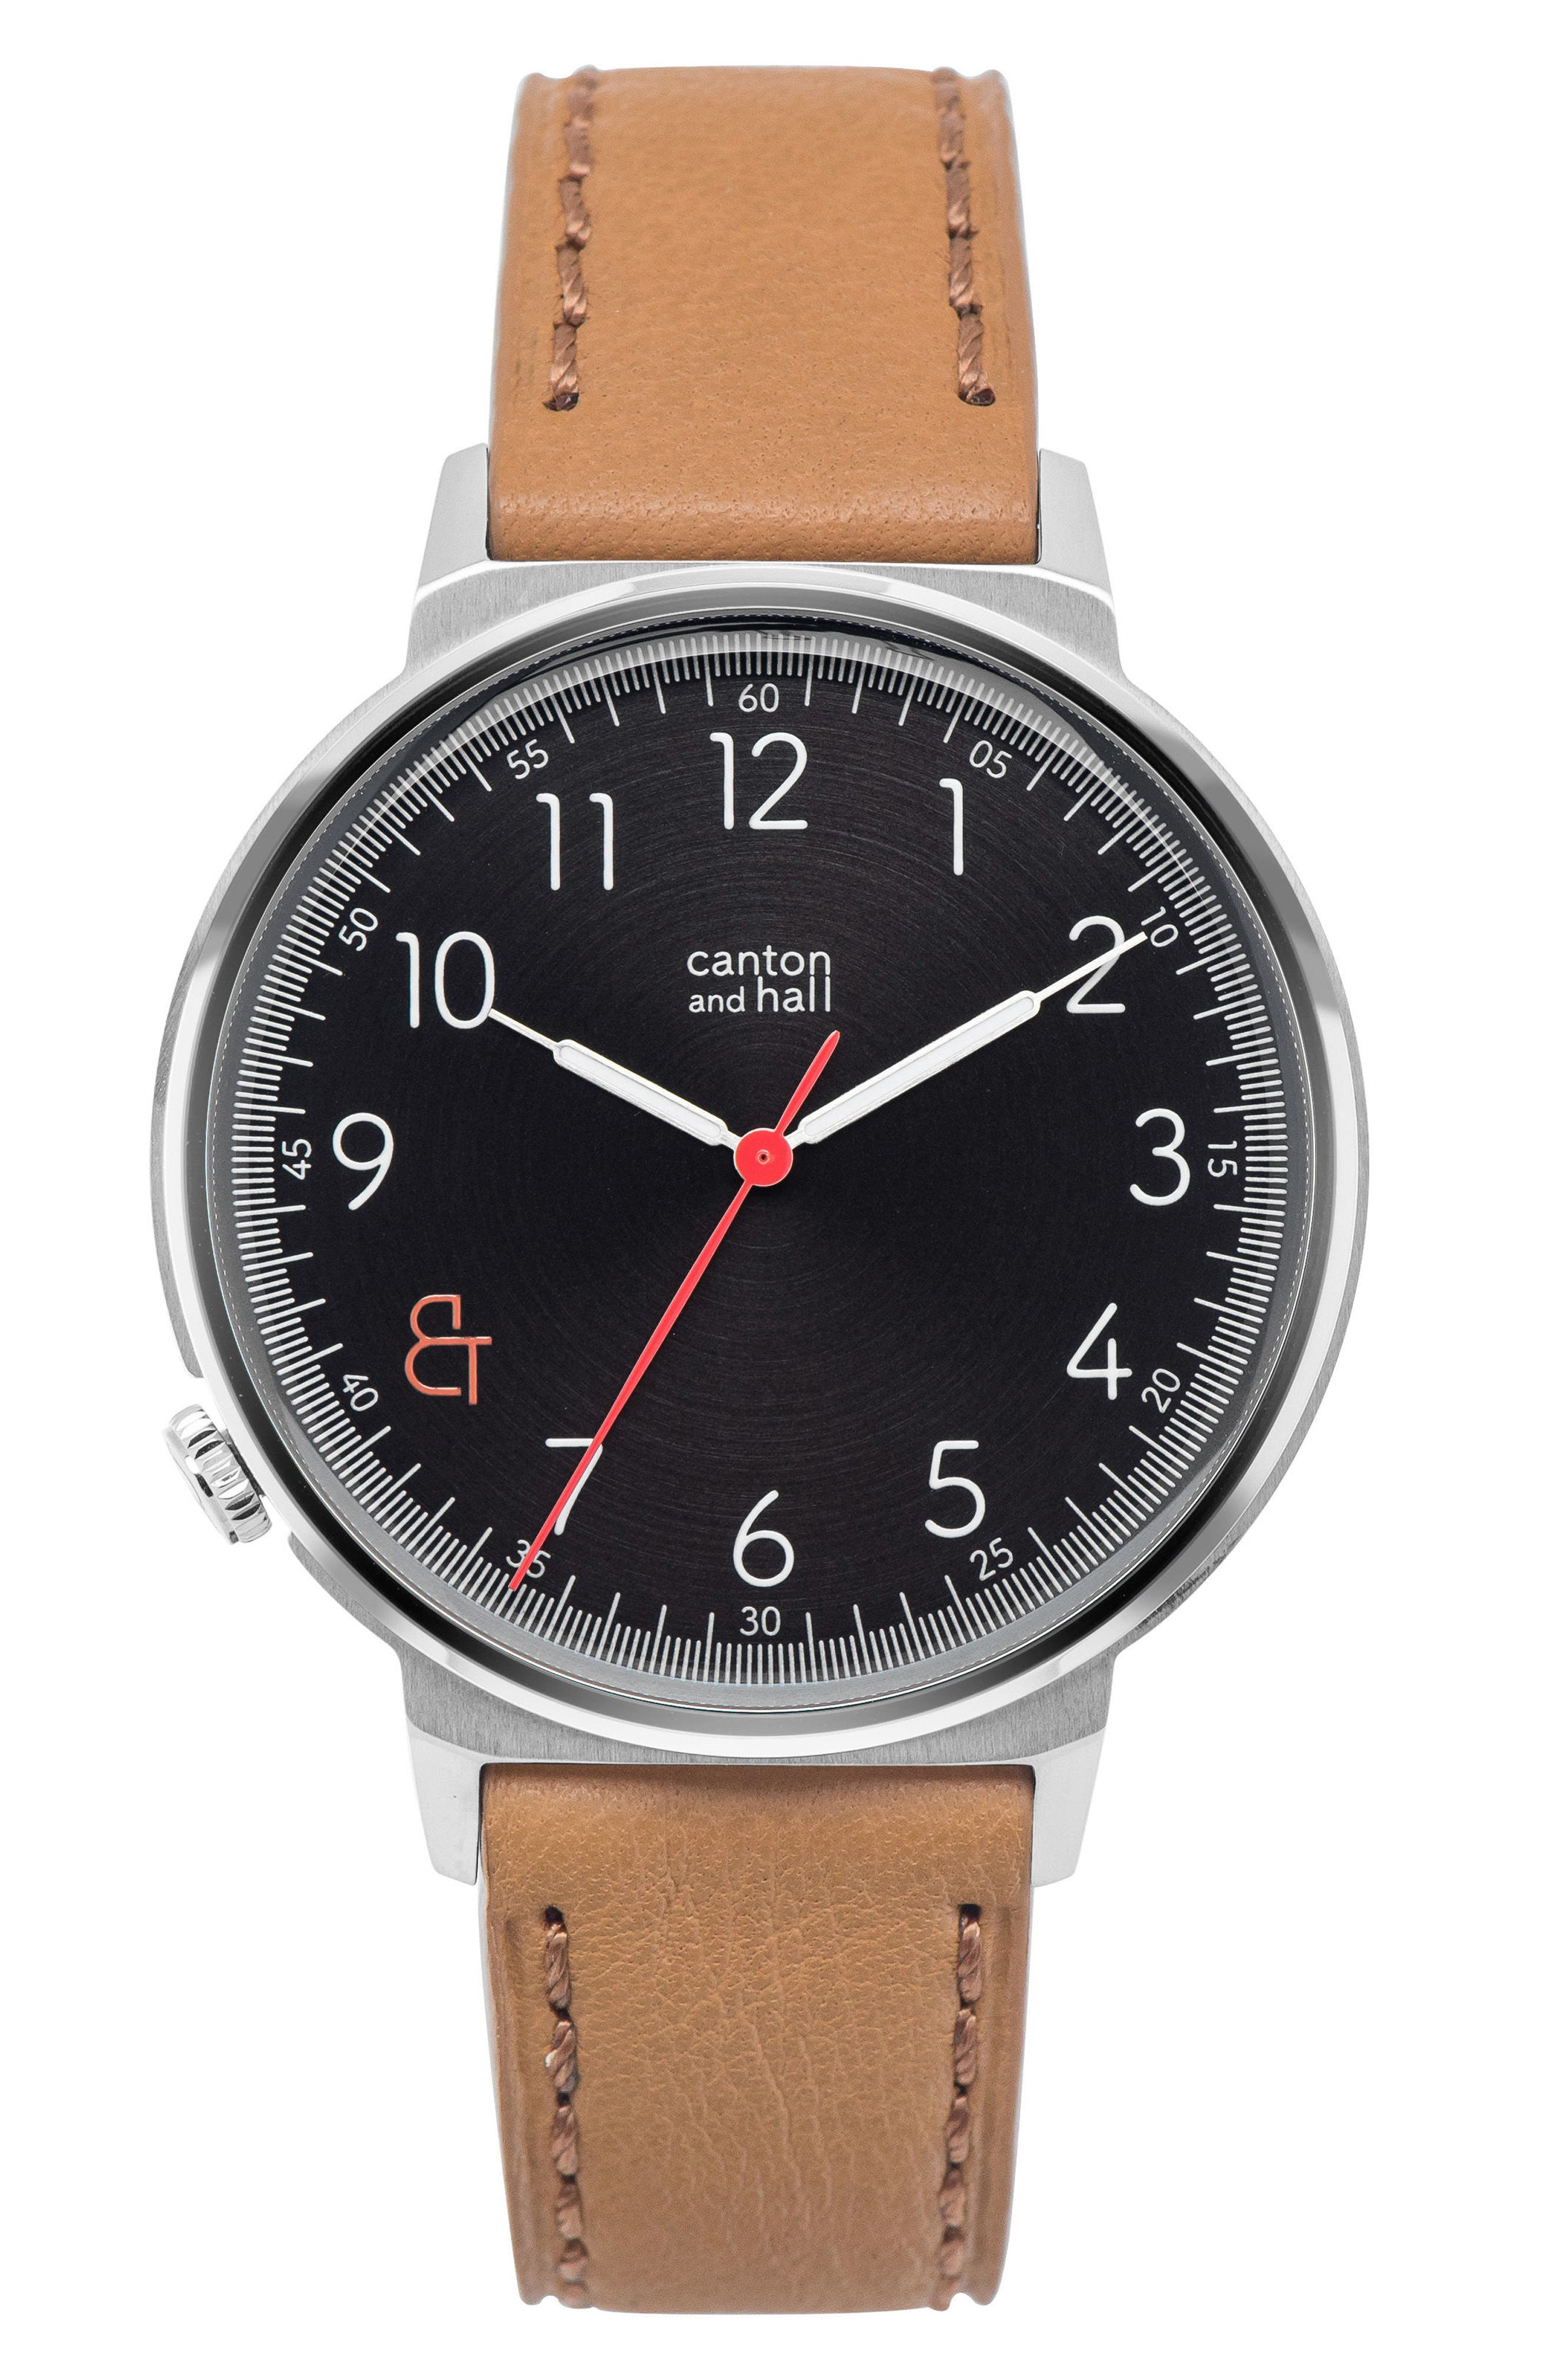 CANTON AND HALL Caton and Hall Leather Strap Watch, 44mm